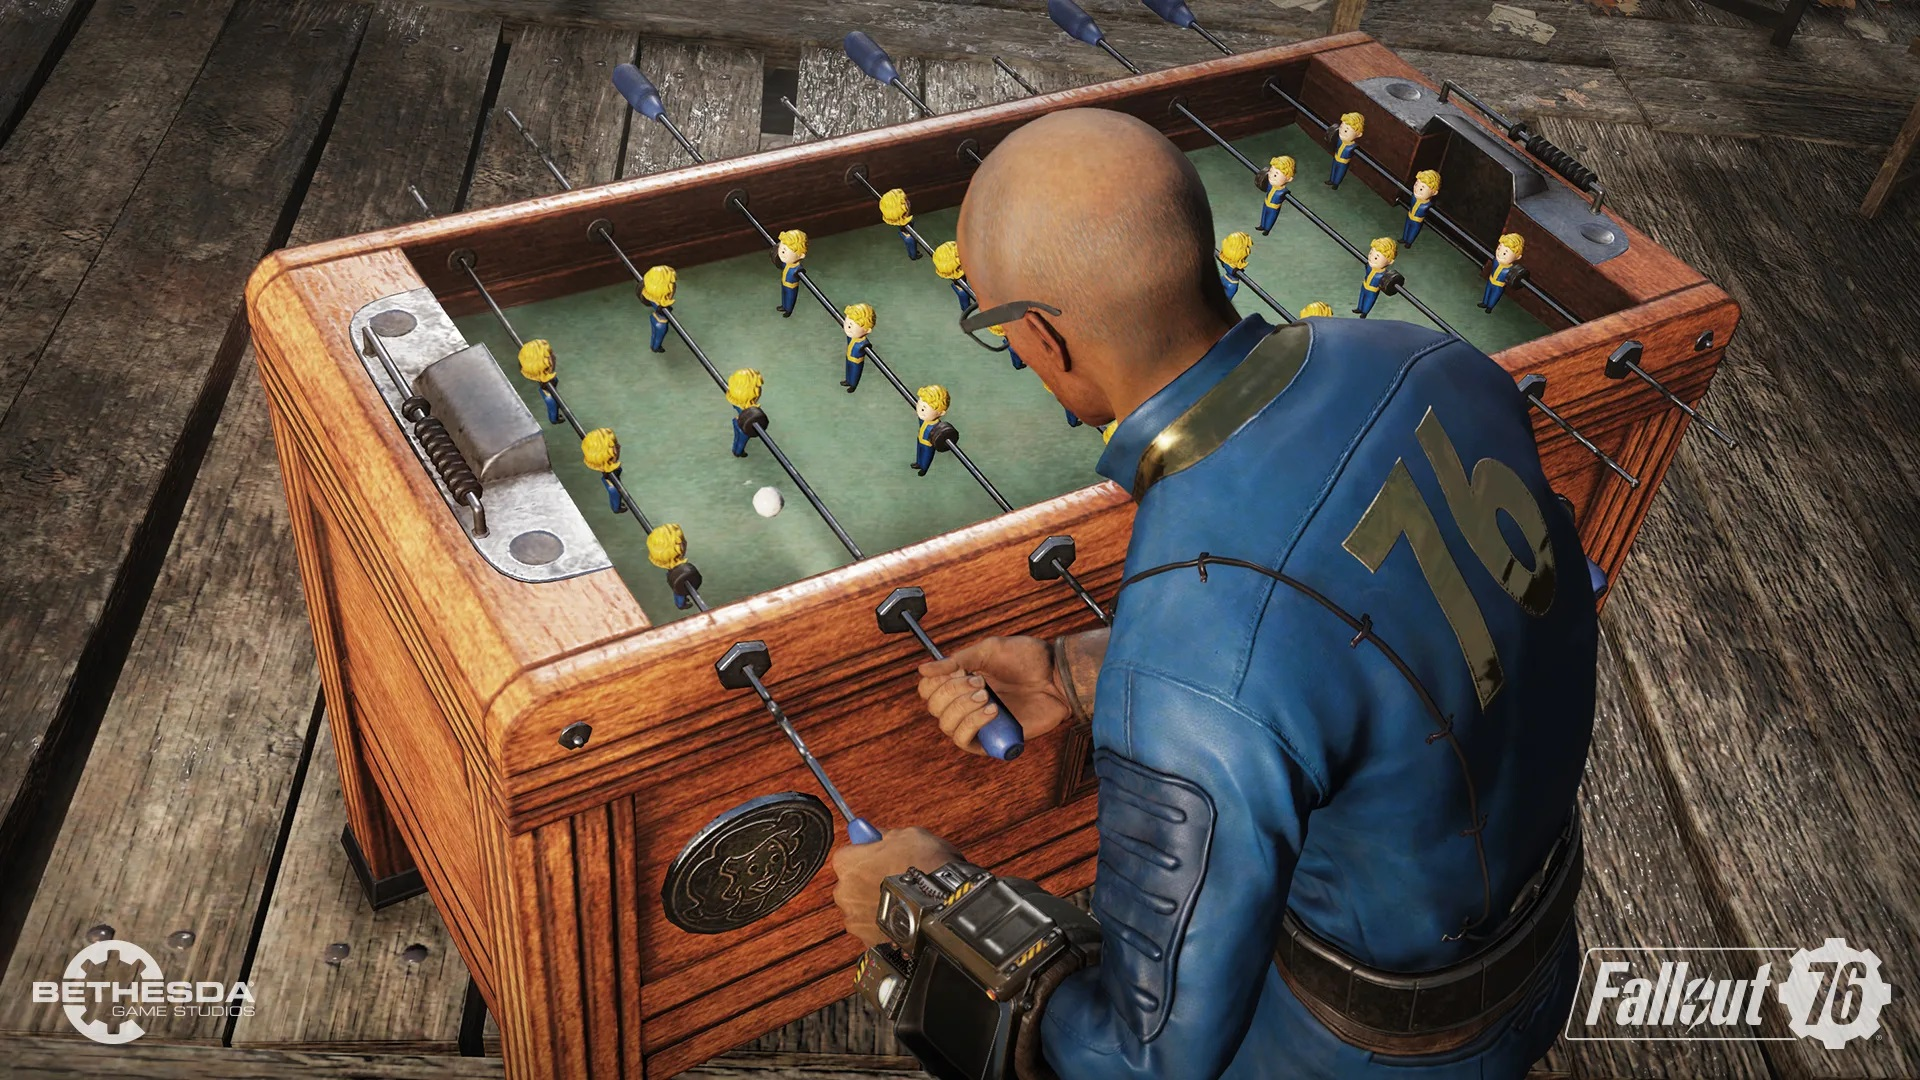 Bethesda has uncapped the microtransactions for Fallout 76 Season 2